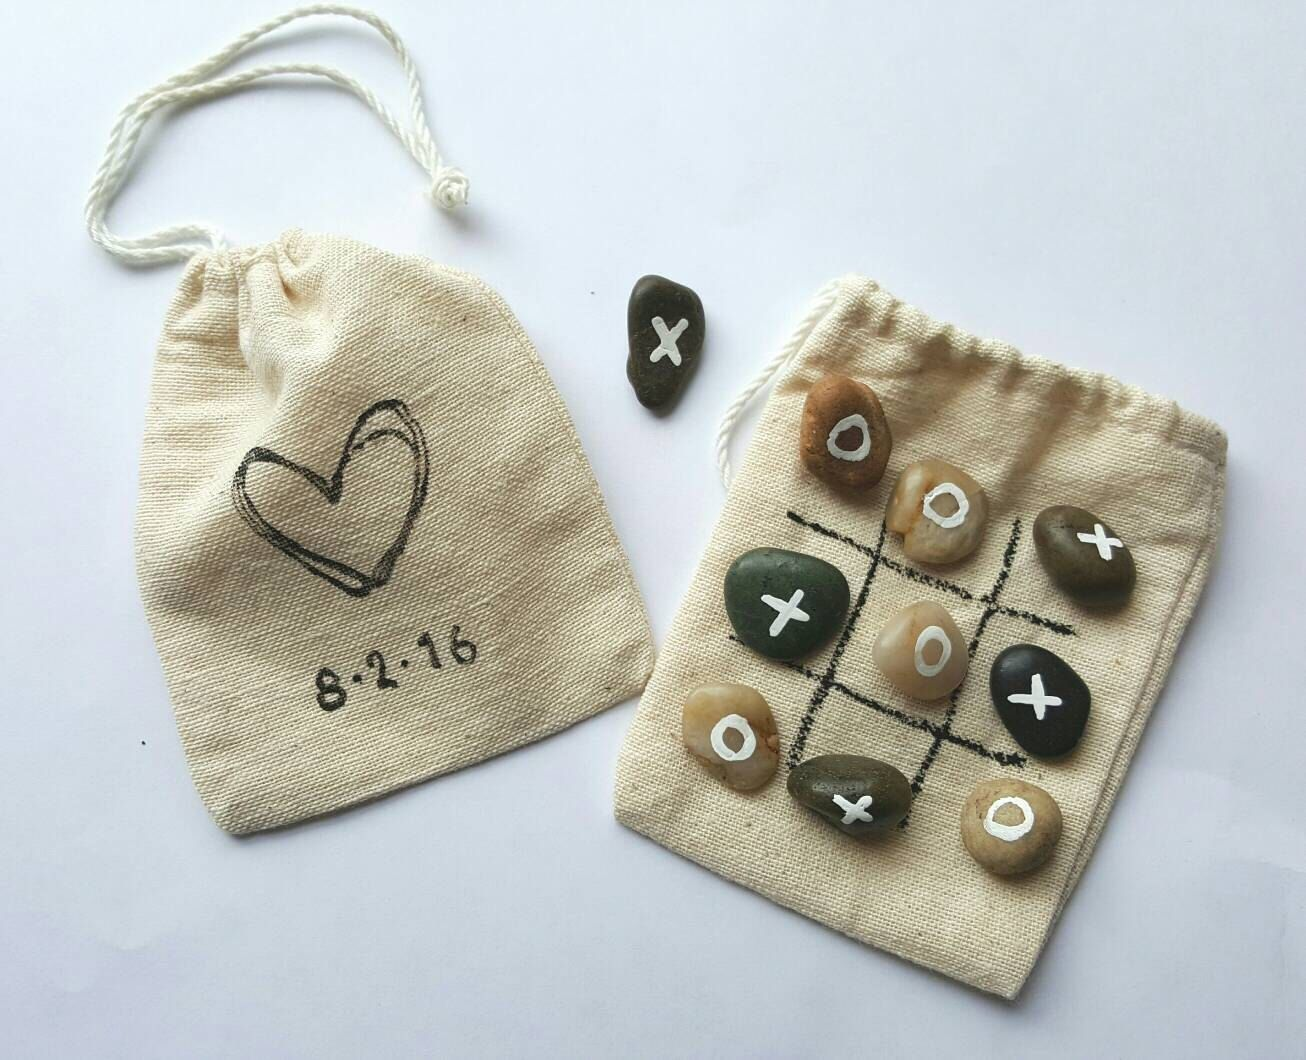 Wedding Gifts From Kids: Wedding Favors- Games For Kids